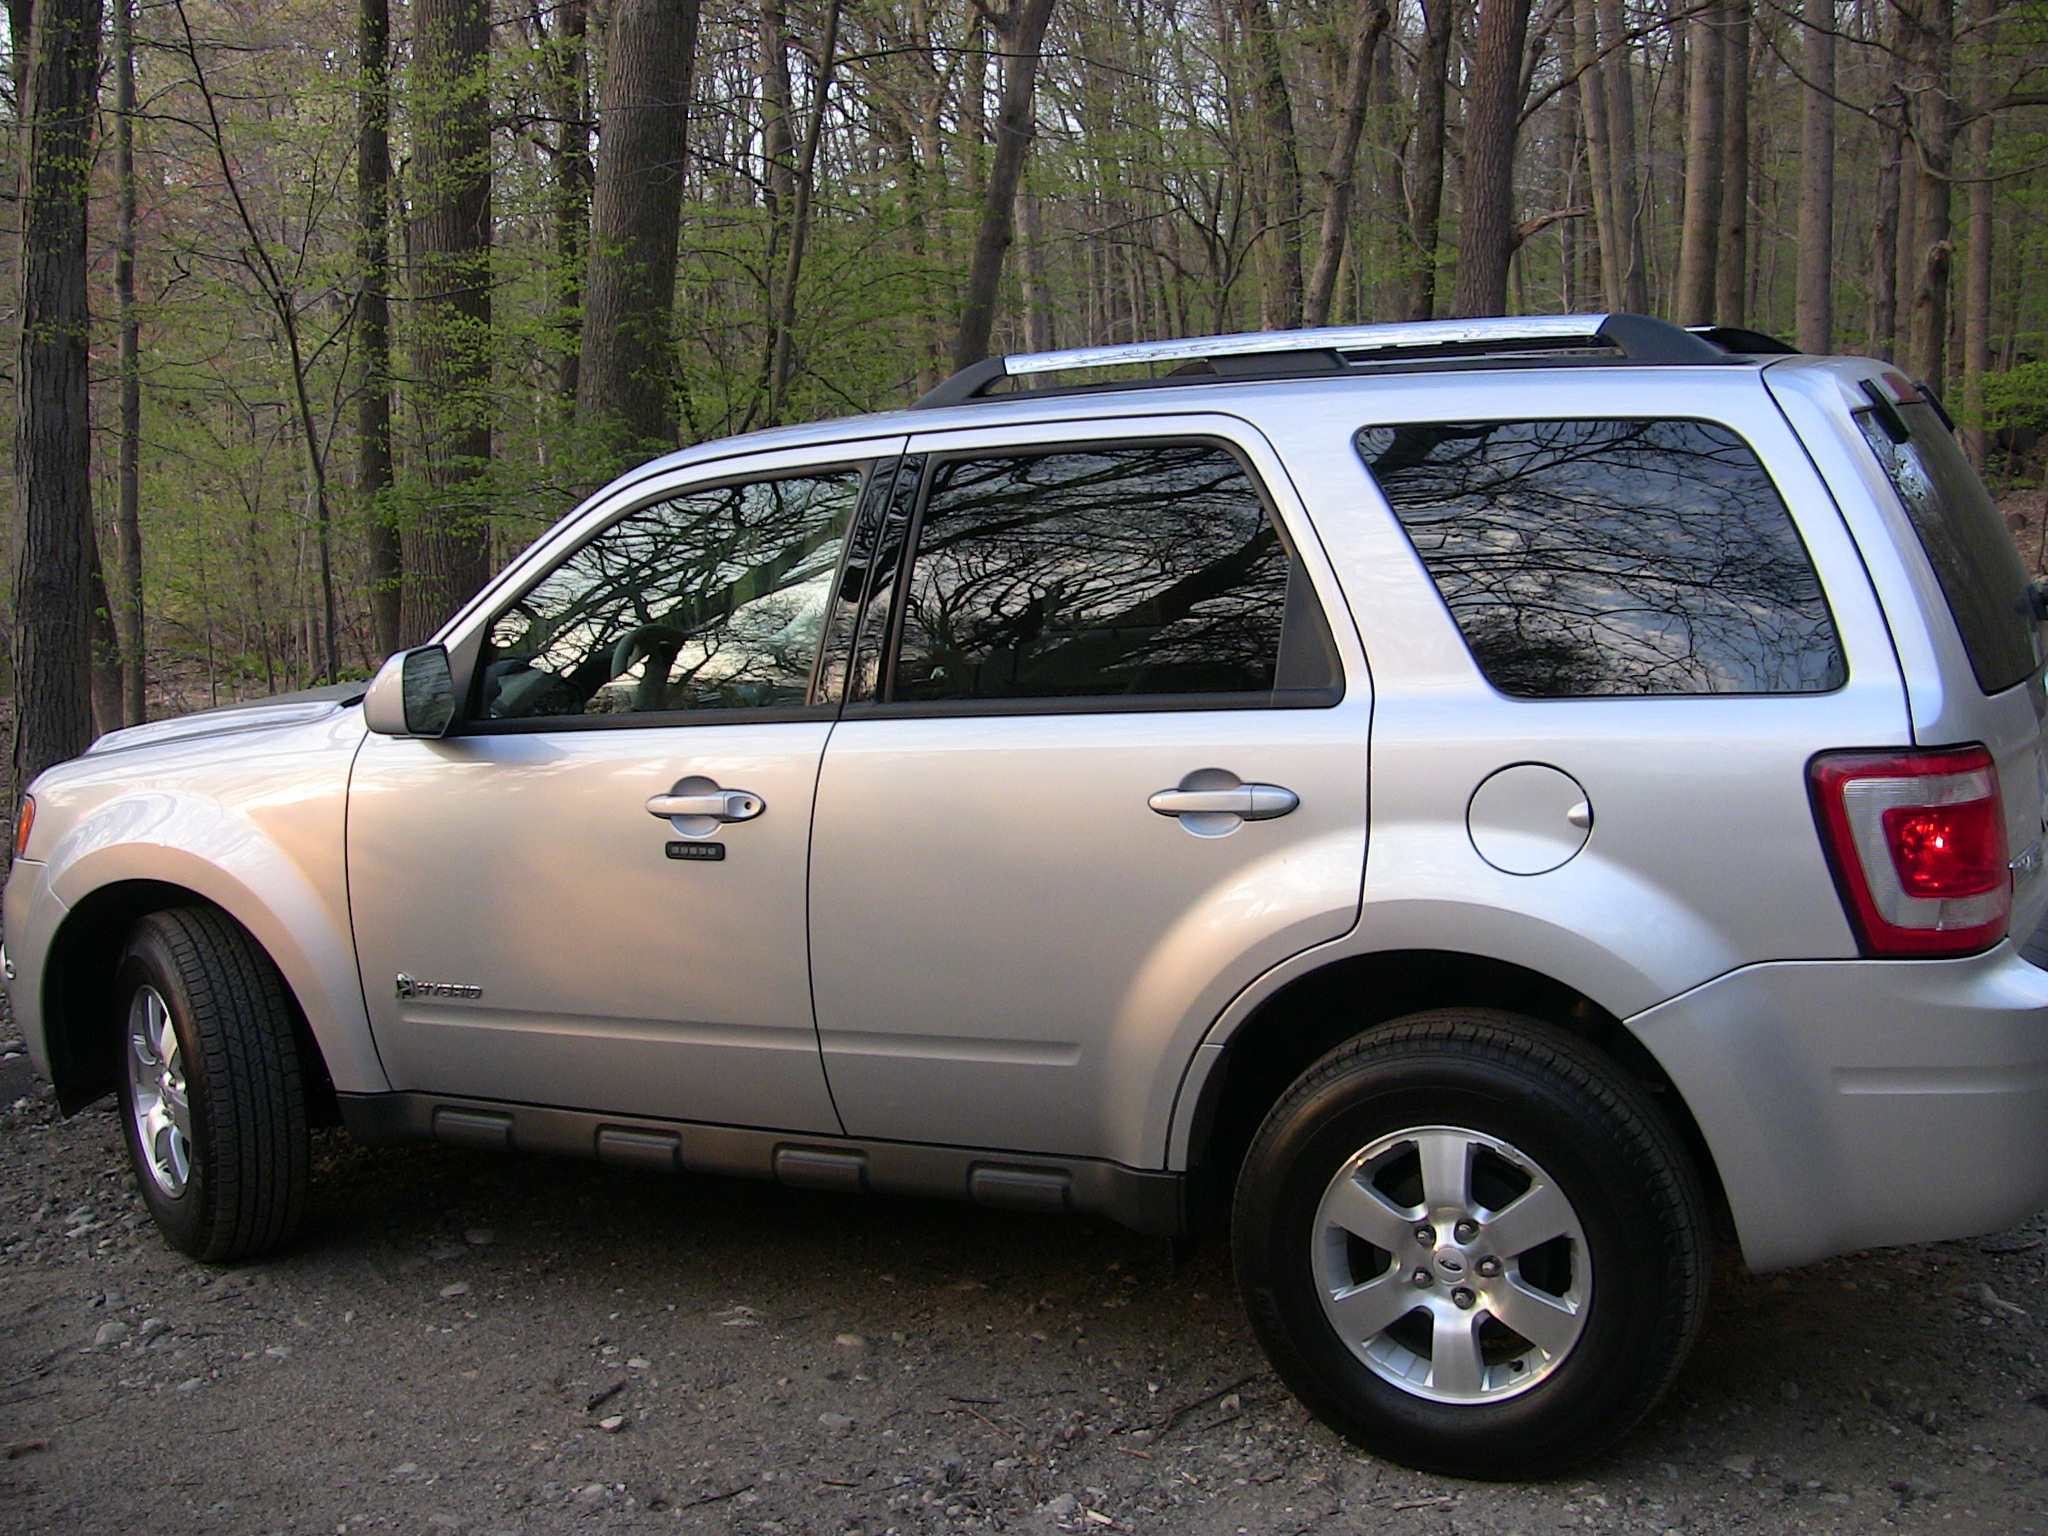 The 2010 Ford Escape Hybrid: An Oldie, But A Goodie